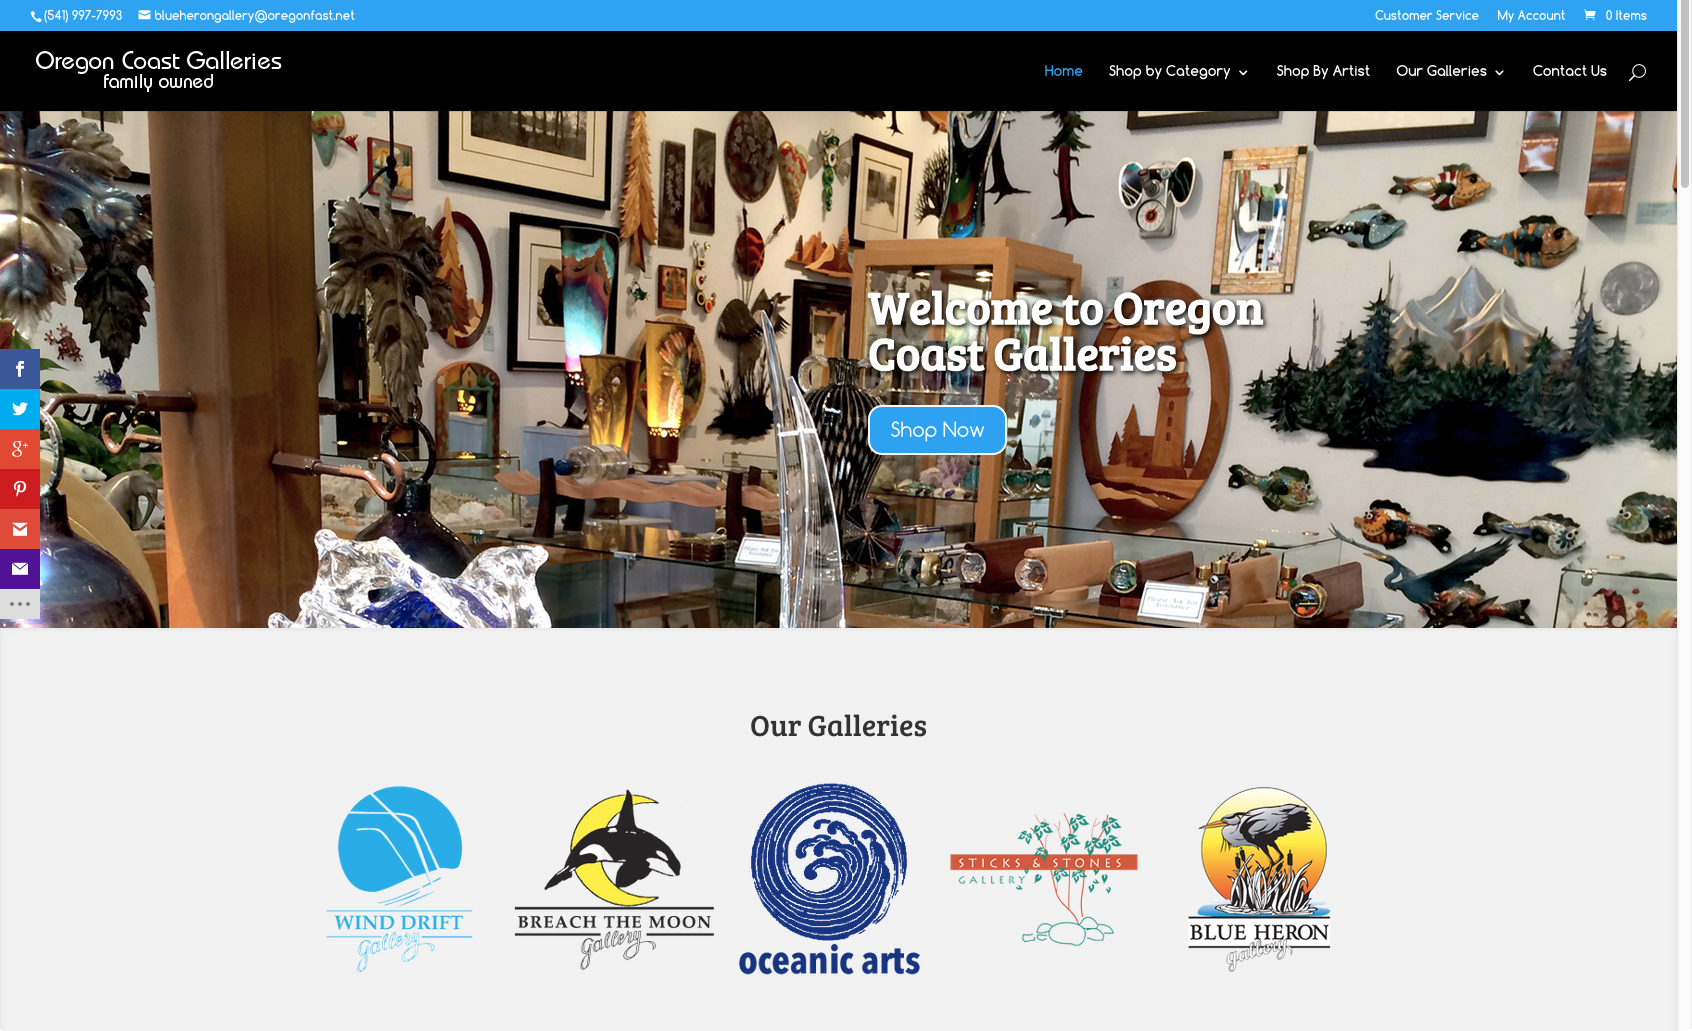 Oregon Coast Galleries – Ecommerce Website